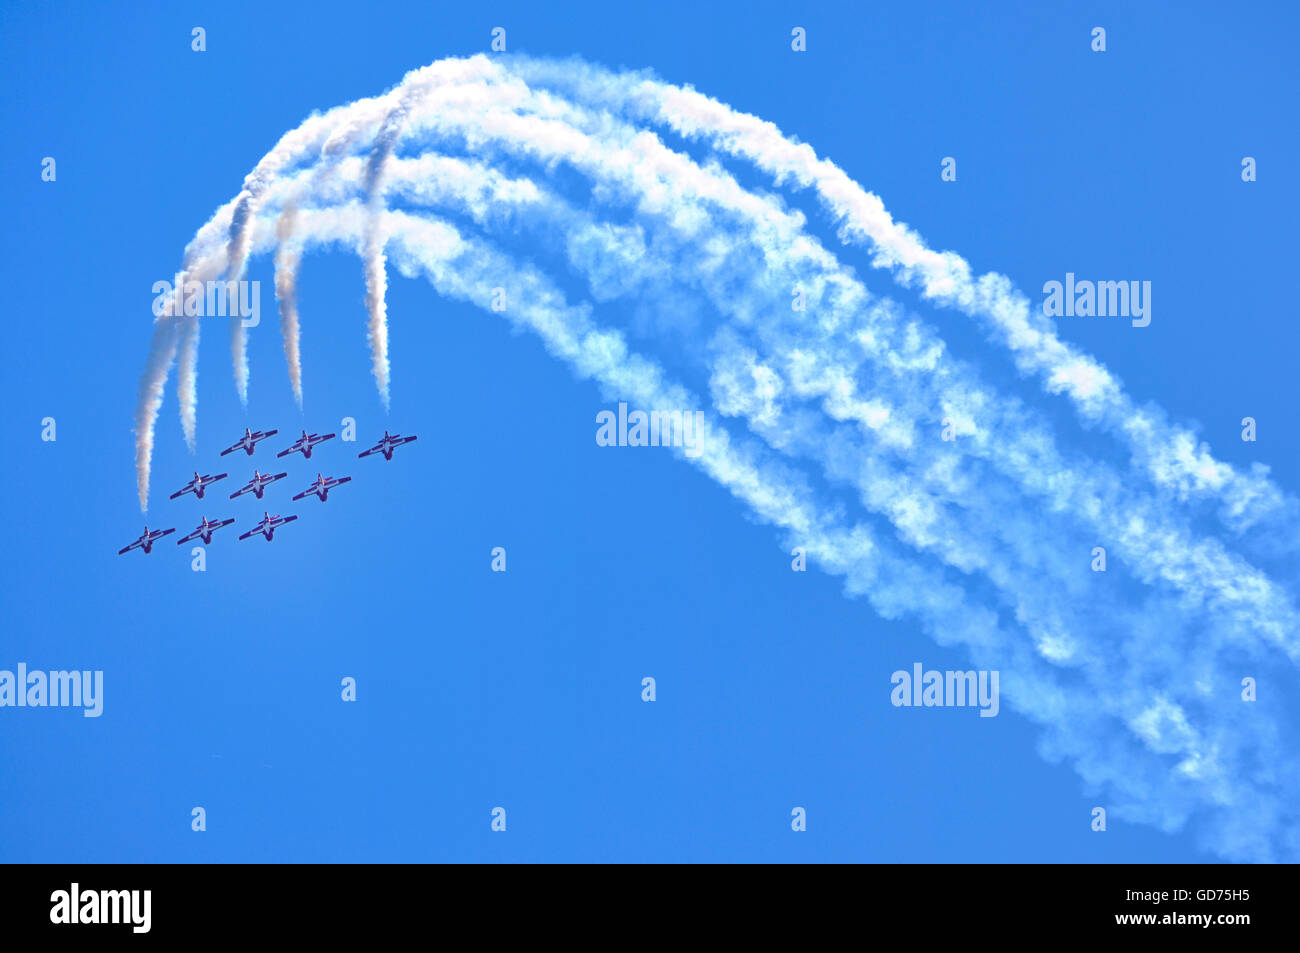 The Canadian Forces Snowbirds aerobatic team, Canadian International Air Show, Toronto, Ontario, Canada - Stock Image